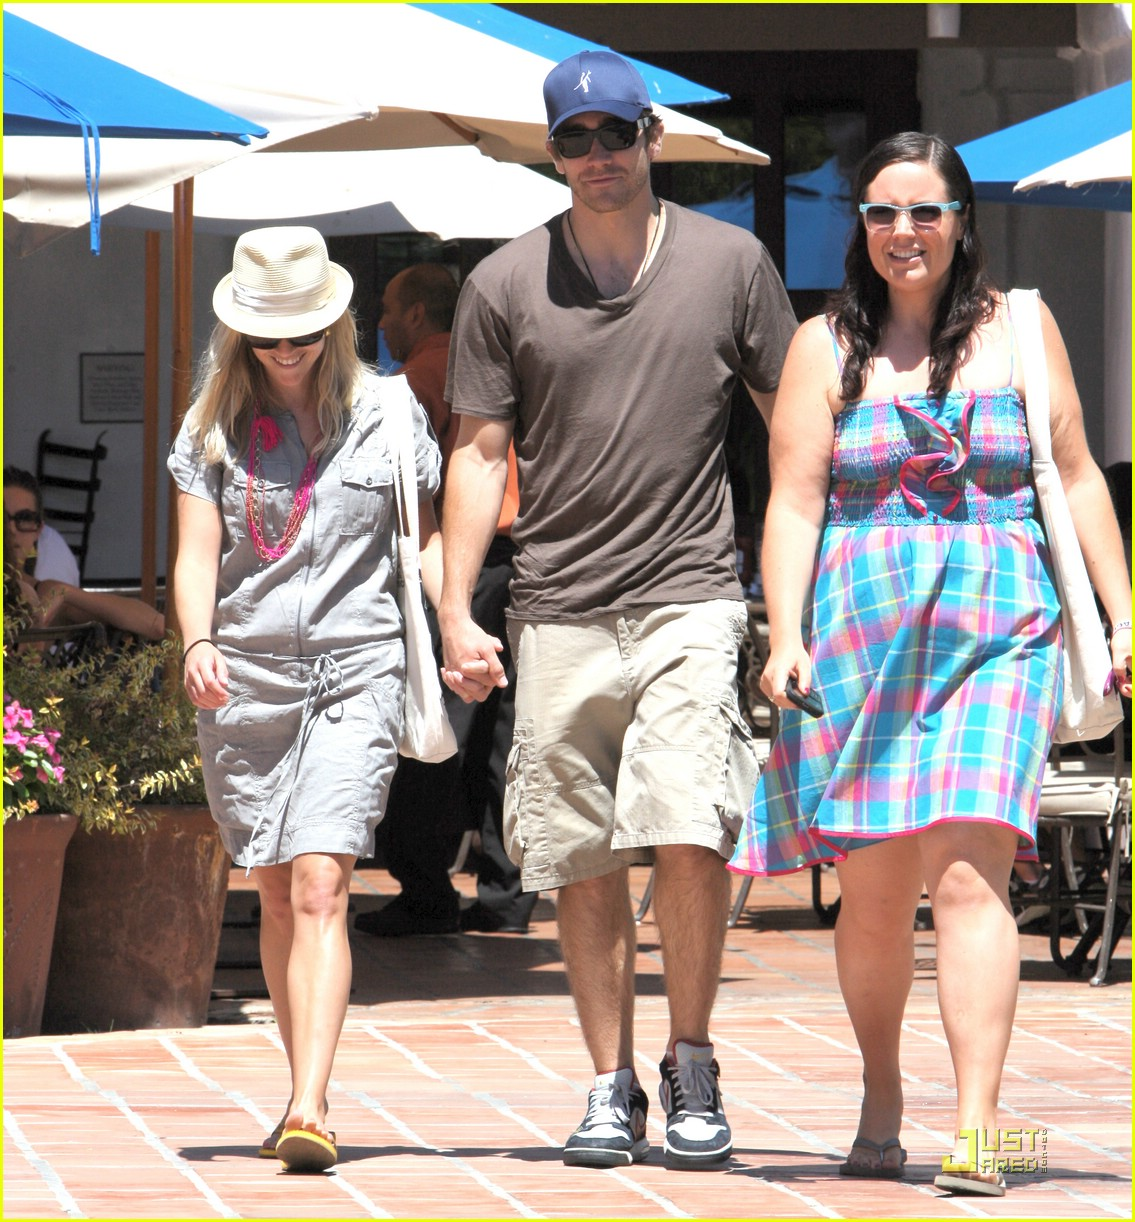 Reese Witherspoon & Jake Gyllenhaal: Coachella Couple Reese Witherspoon